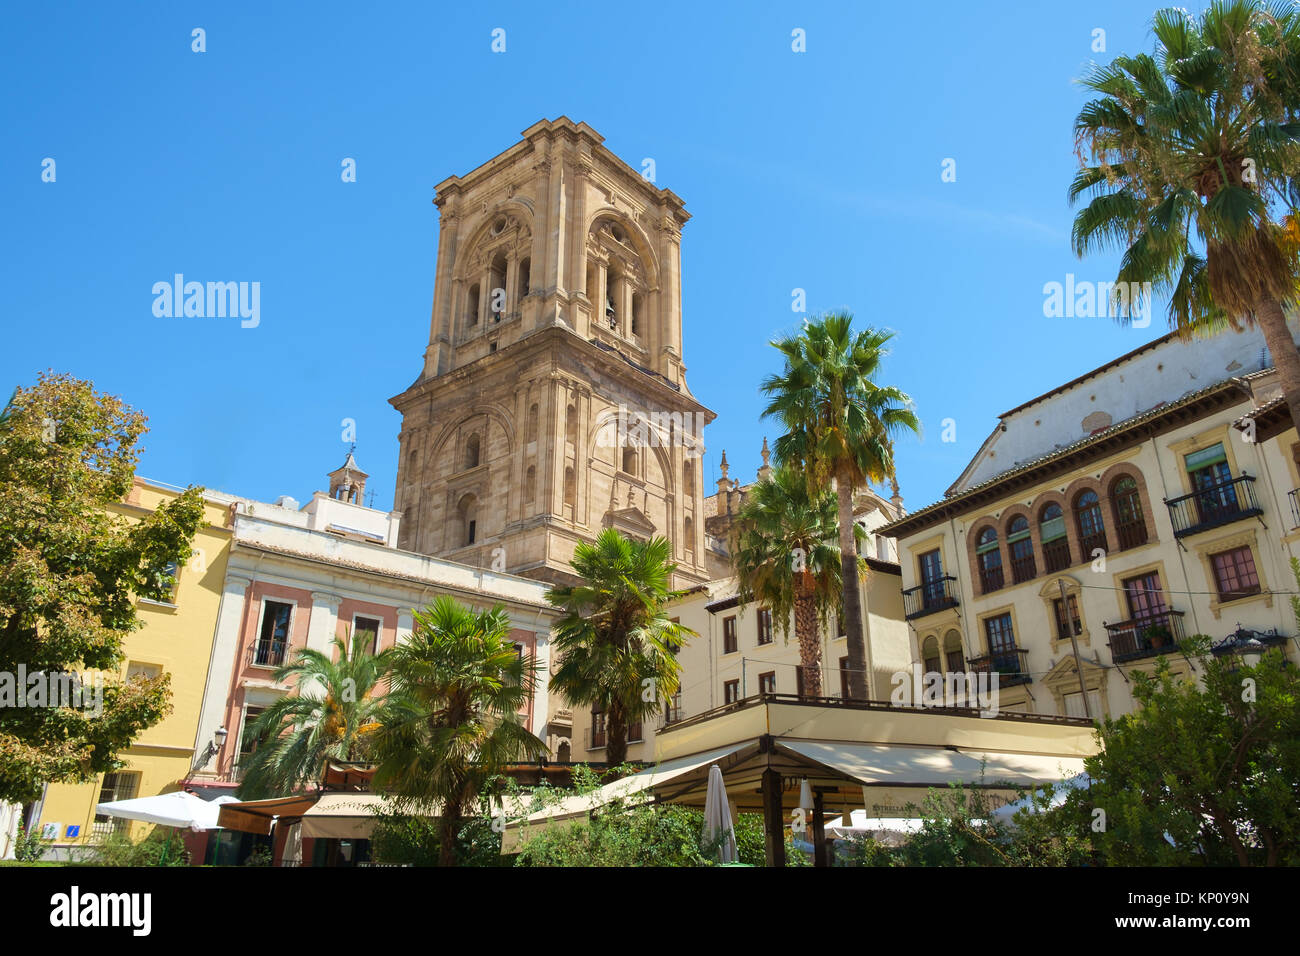 el granada catholic singles Like agra, india, and the taj mahal, the andalusian city of granada in southern spain is so well known for a single monument — the alhambra, a walled fortress housing magnificent 13th- to 15th.